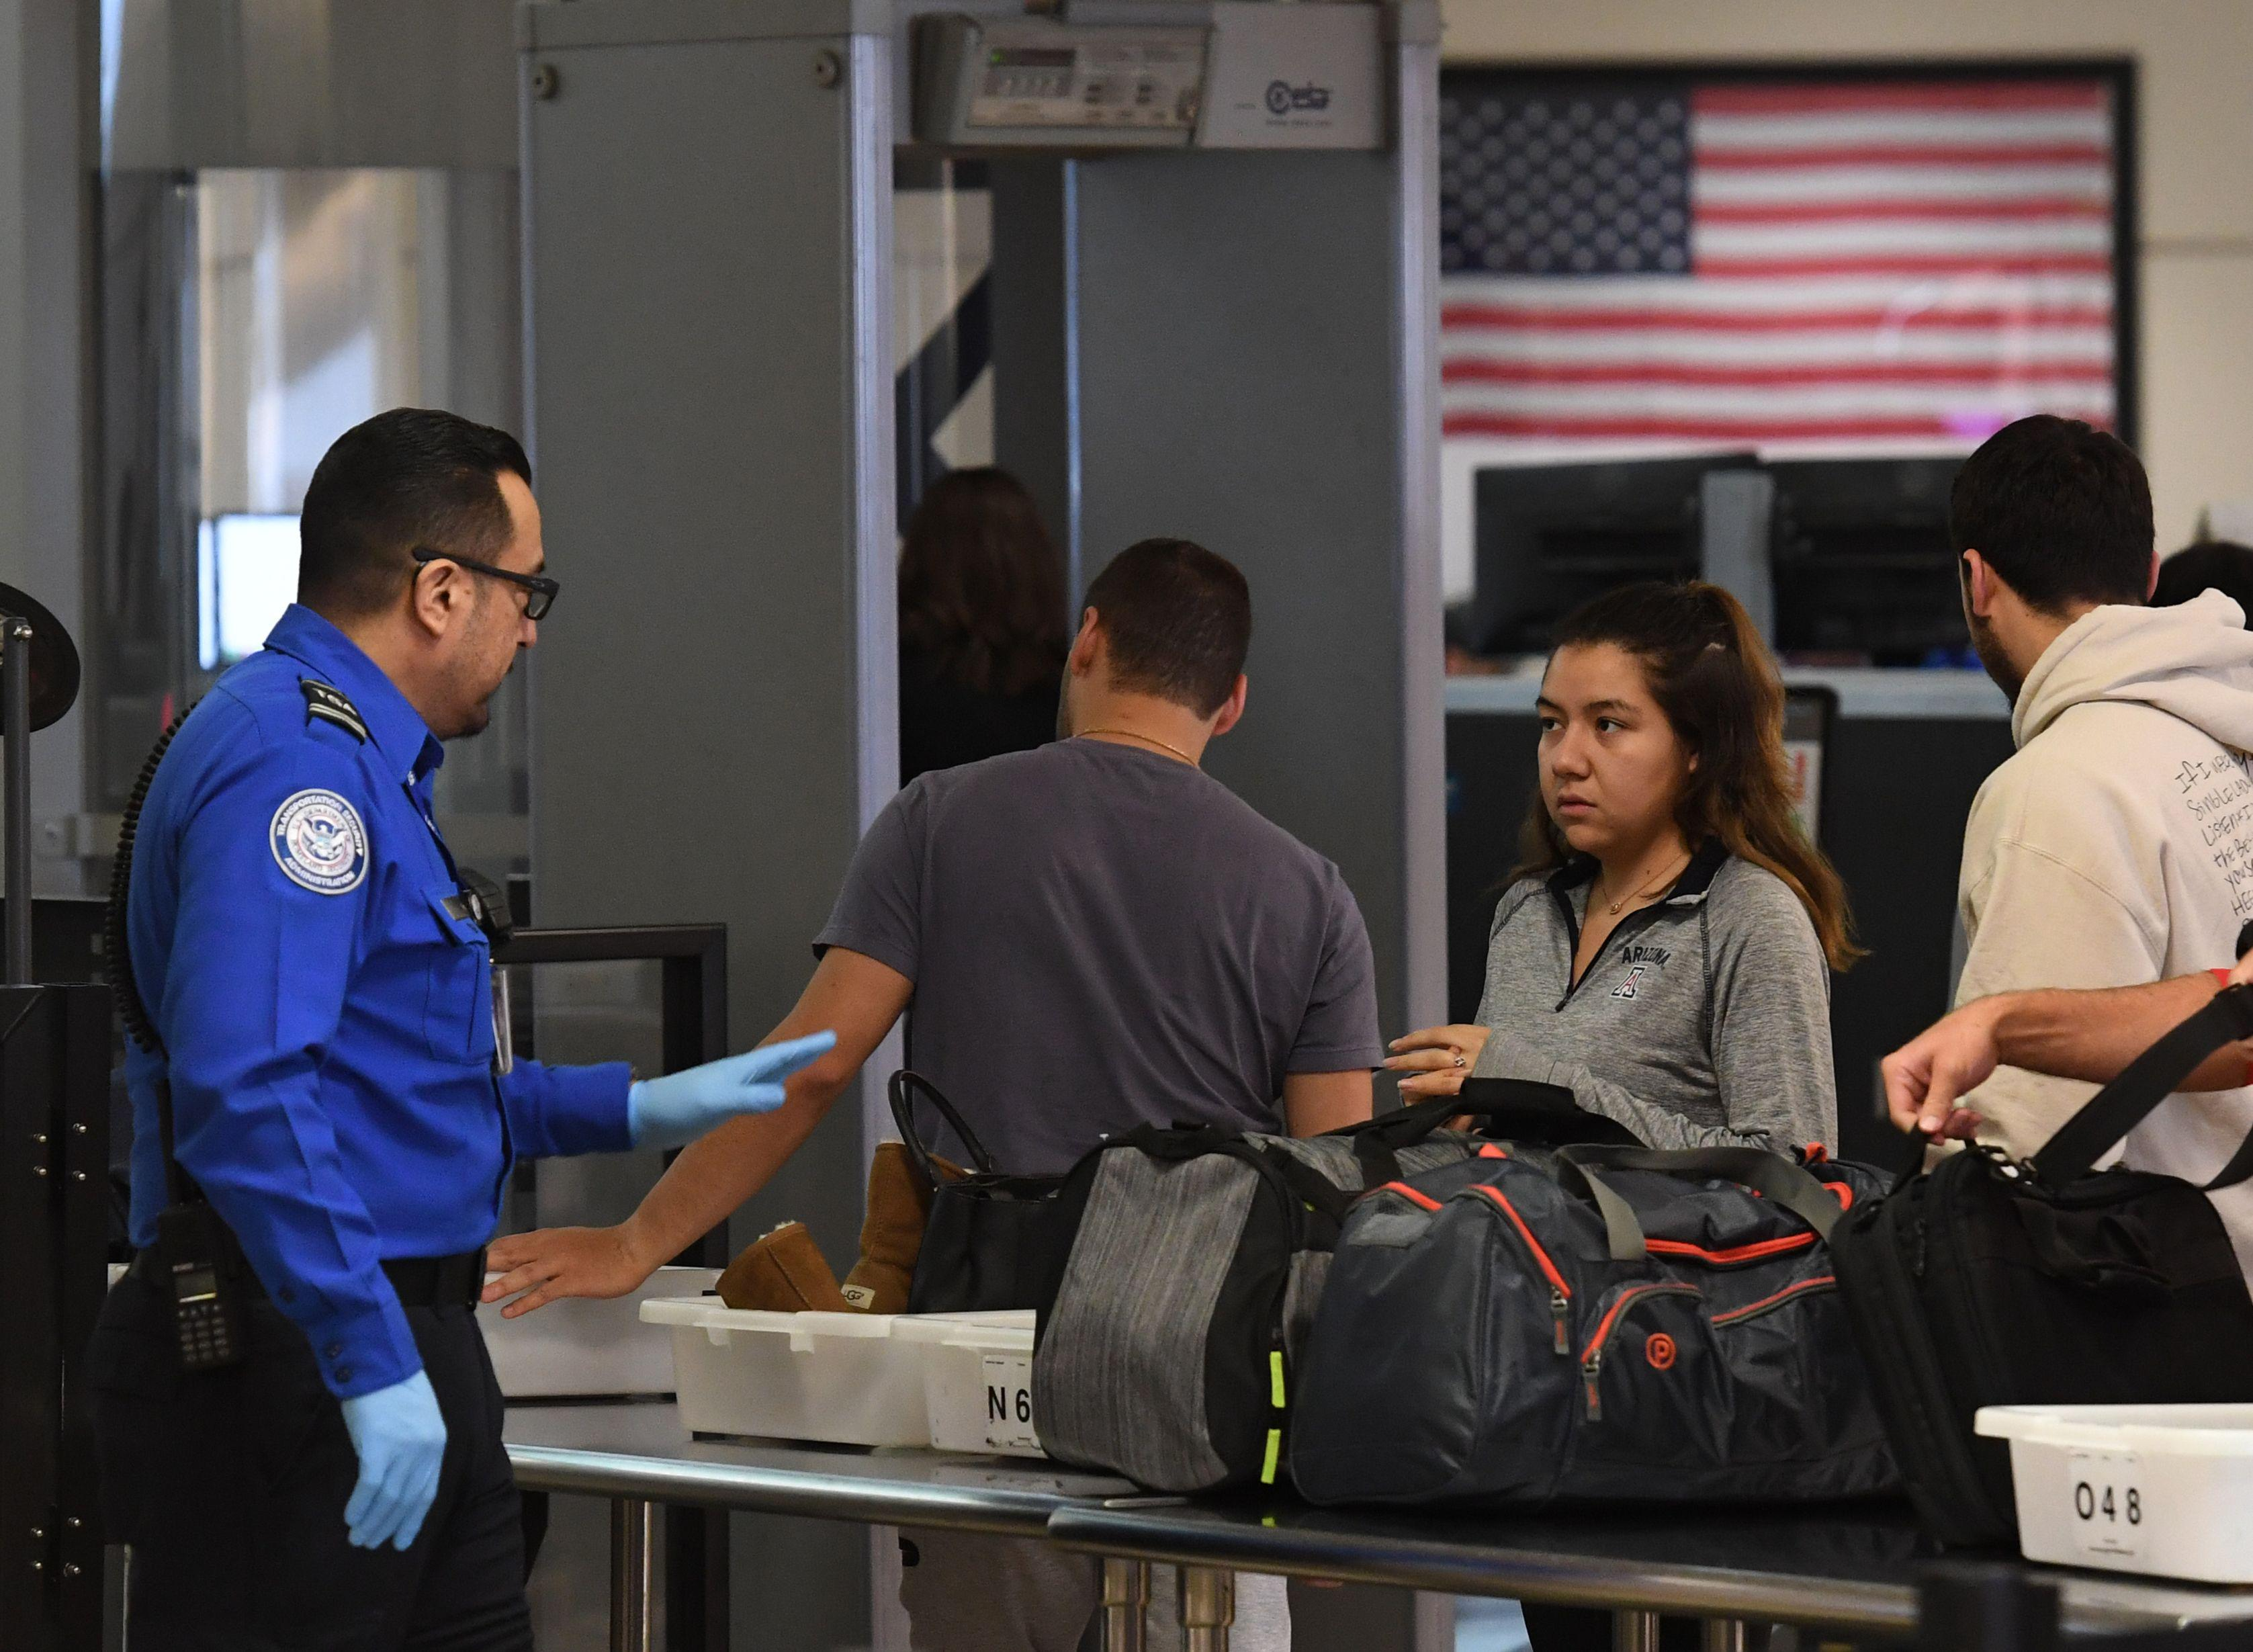 Transportation Security Administration (TSA) officers work unpaid on the first day of the partial government shutdown, at LAX Airport in Los Angeles, California on December 22, 2018.